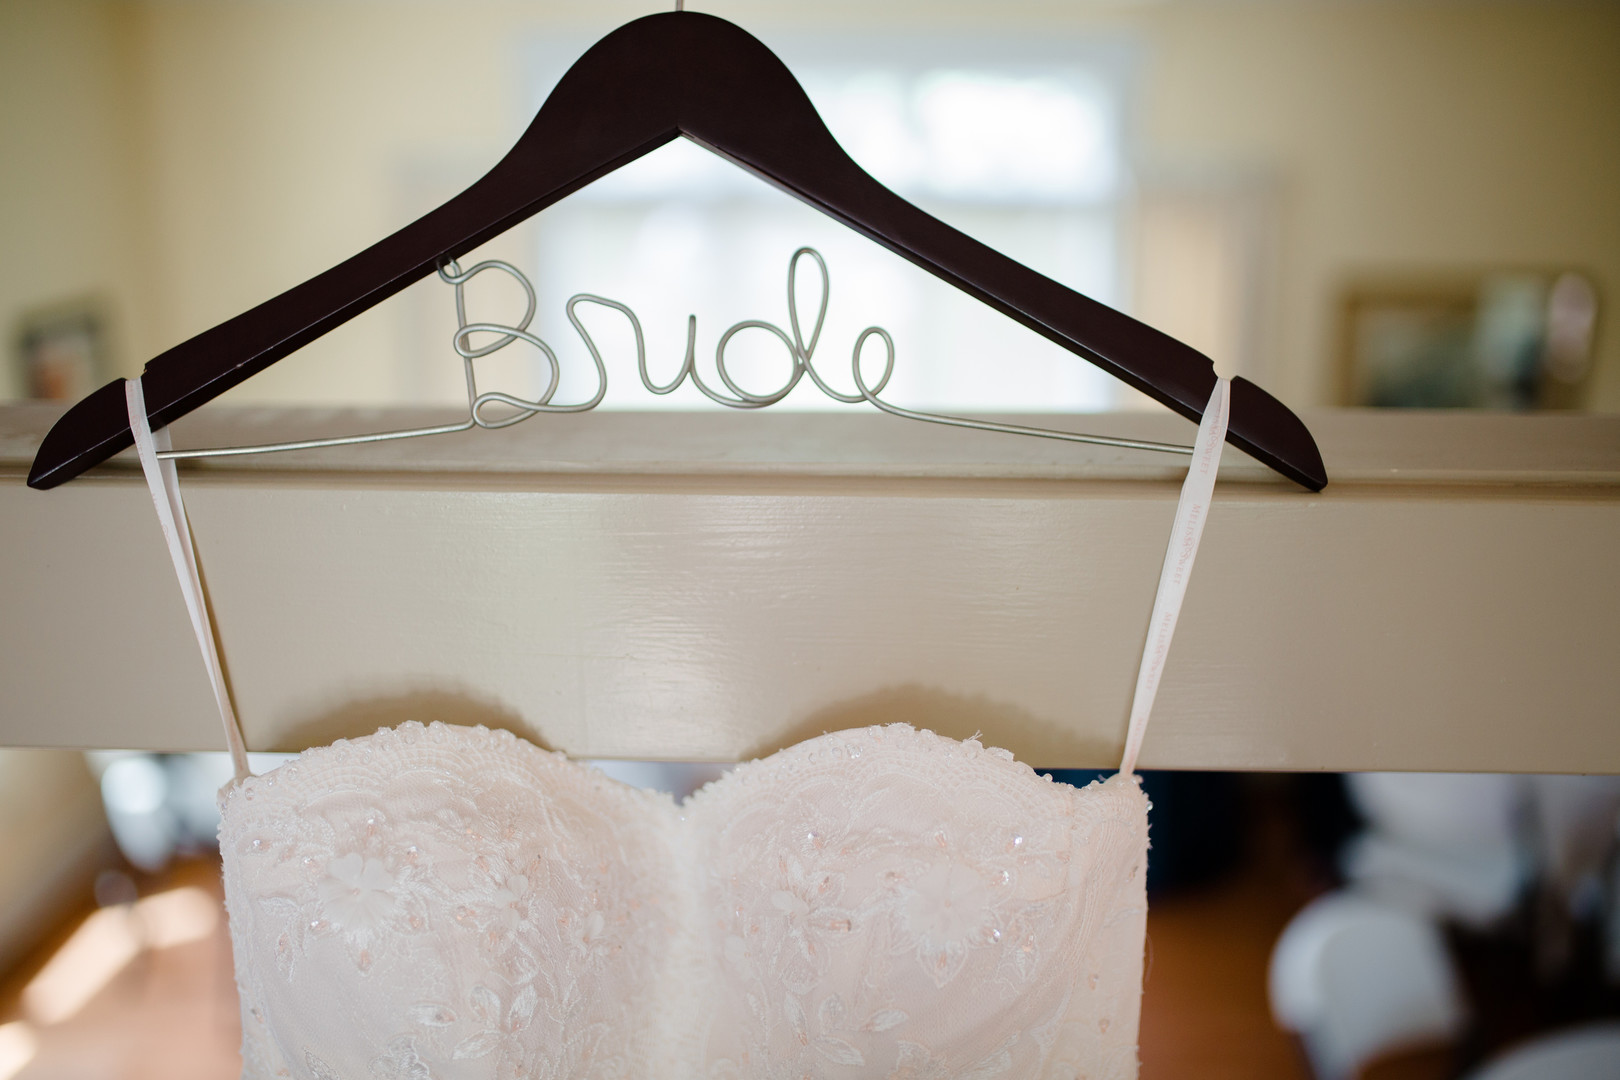 Bride Hanger: Rustic country wedding in Minooka, IL captured by Katie Brsan Photography. Visit CHItheeWED.com for more wedding inspiration!